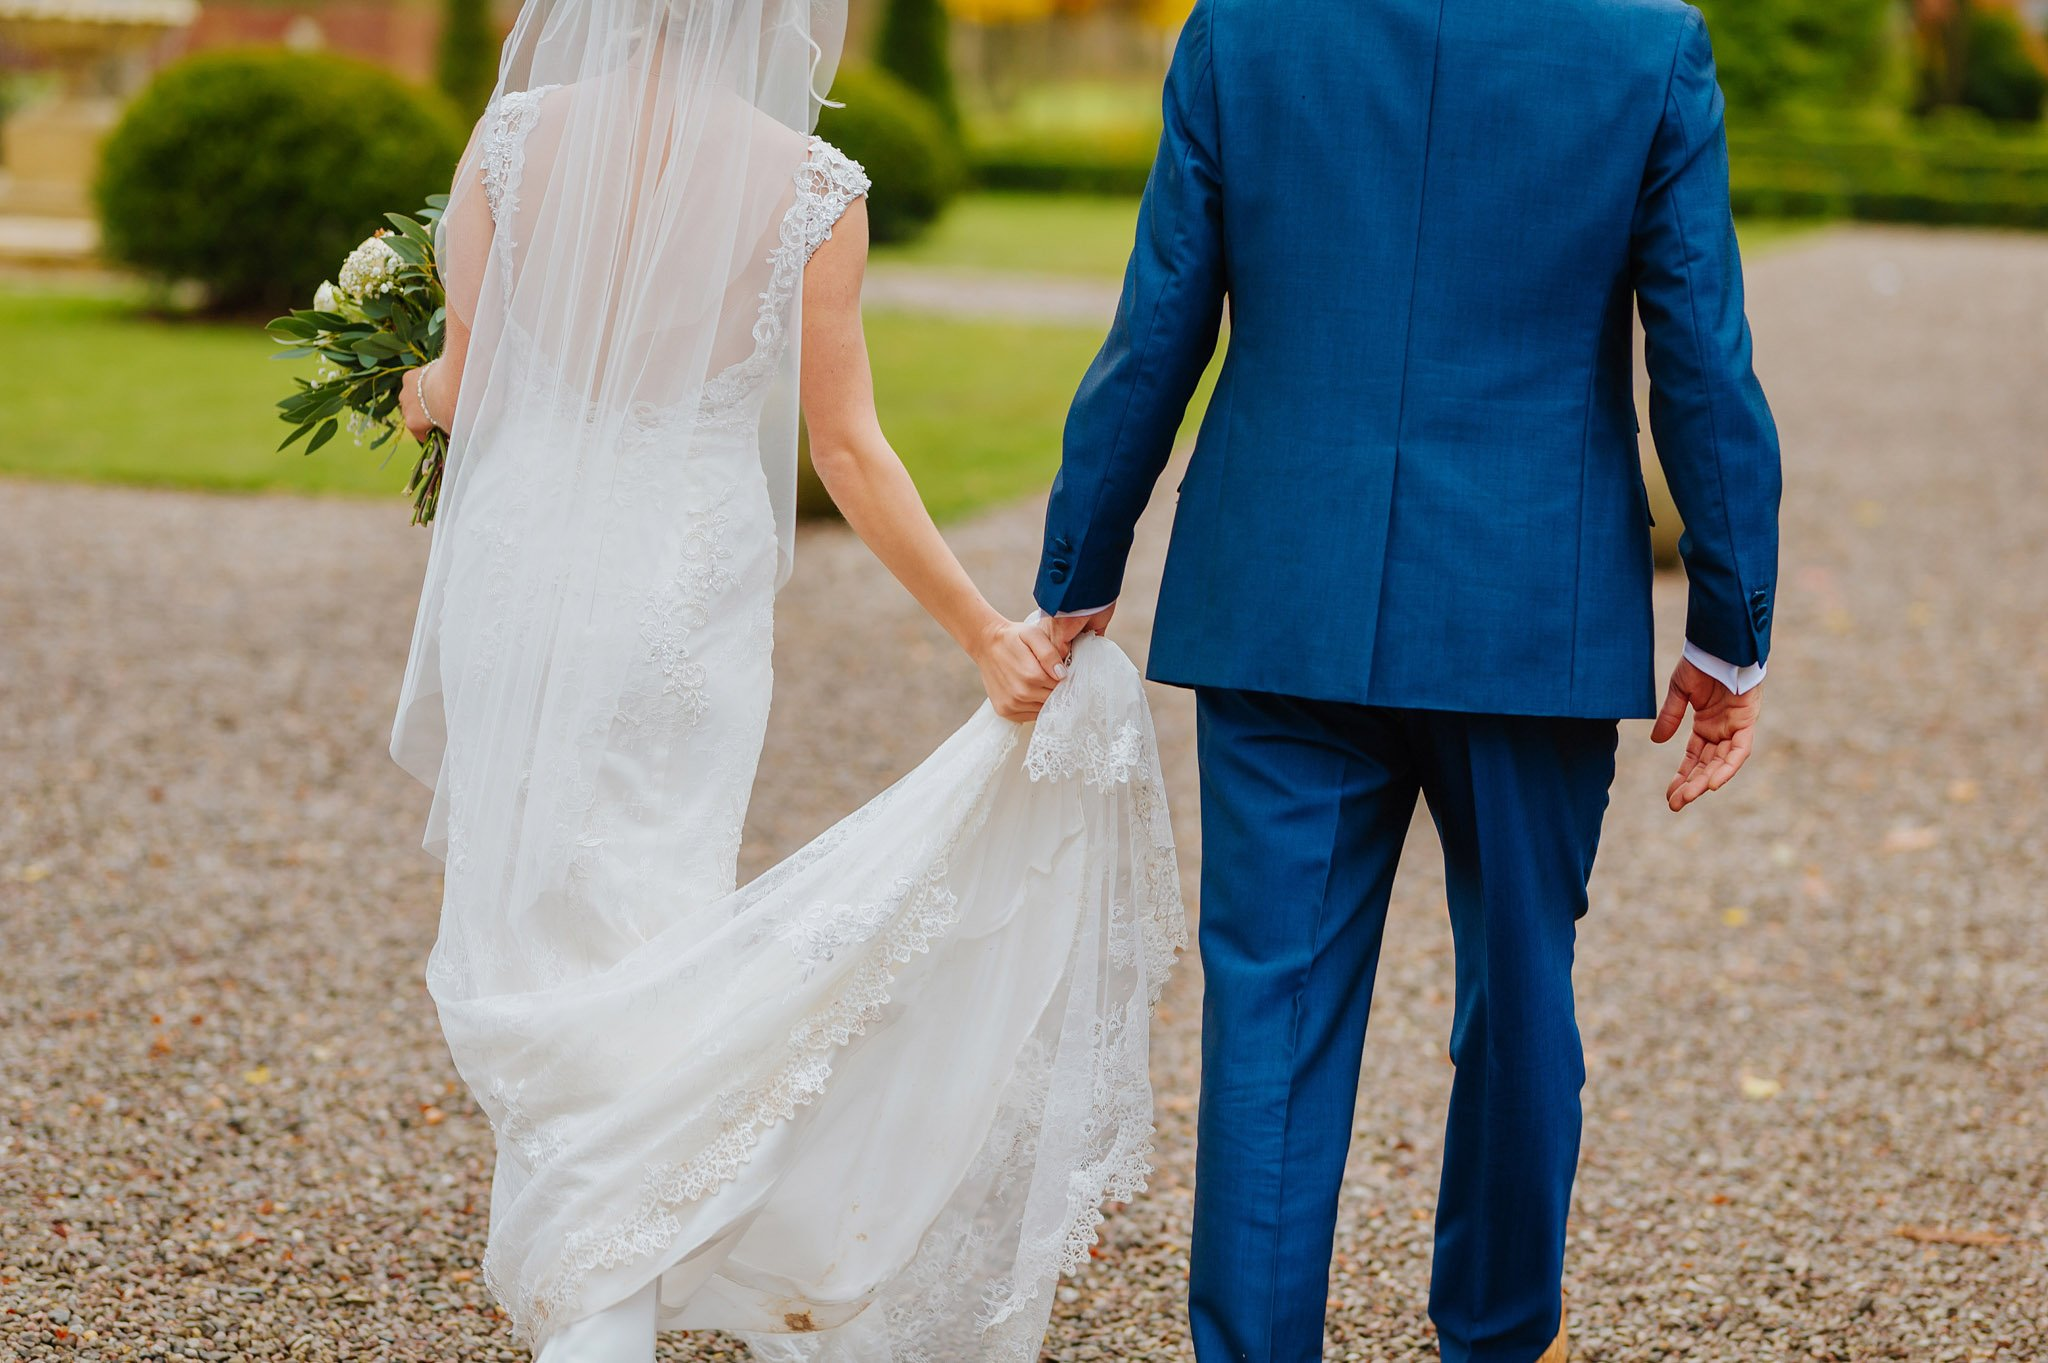 Lemore Manor wedding, Herefordshire - West Midlands | Sadie + Ken 70